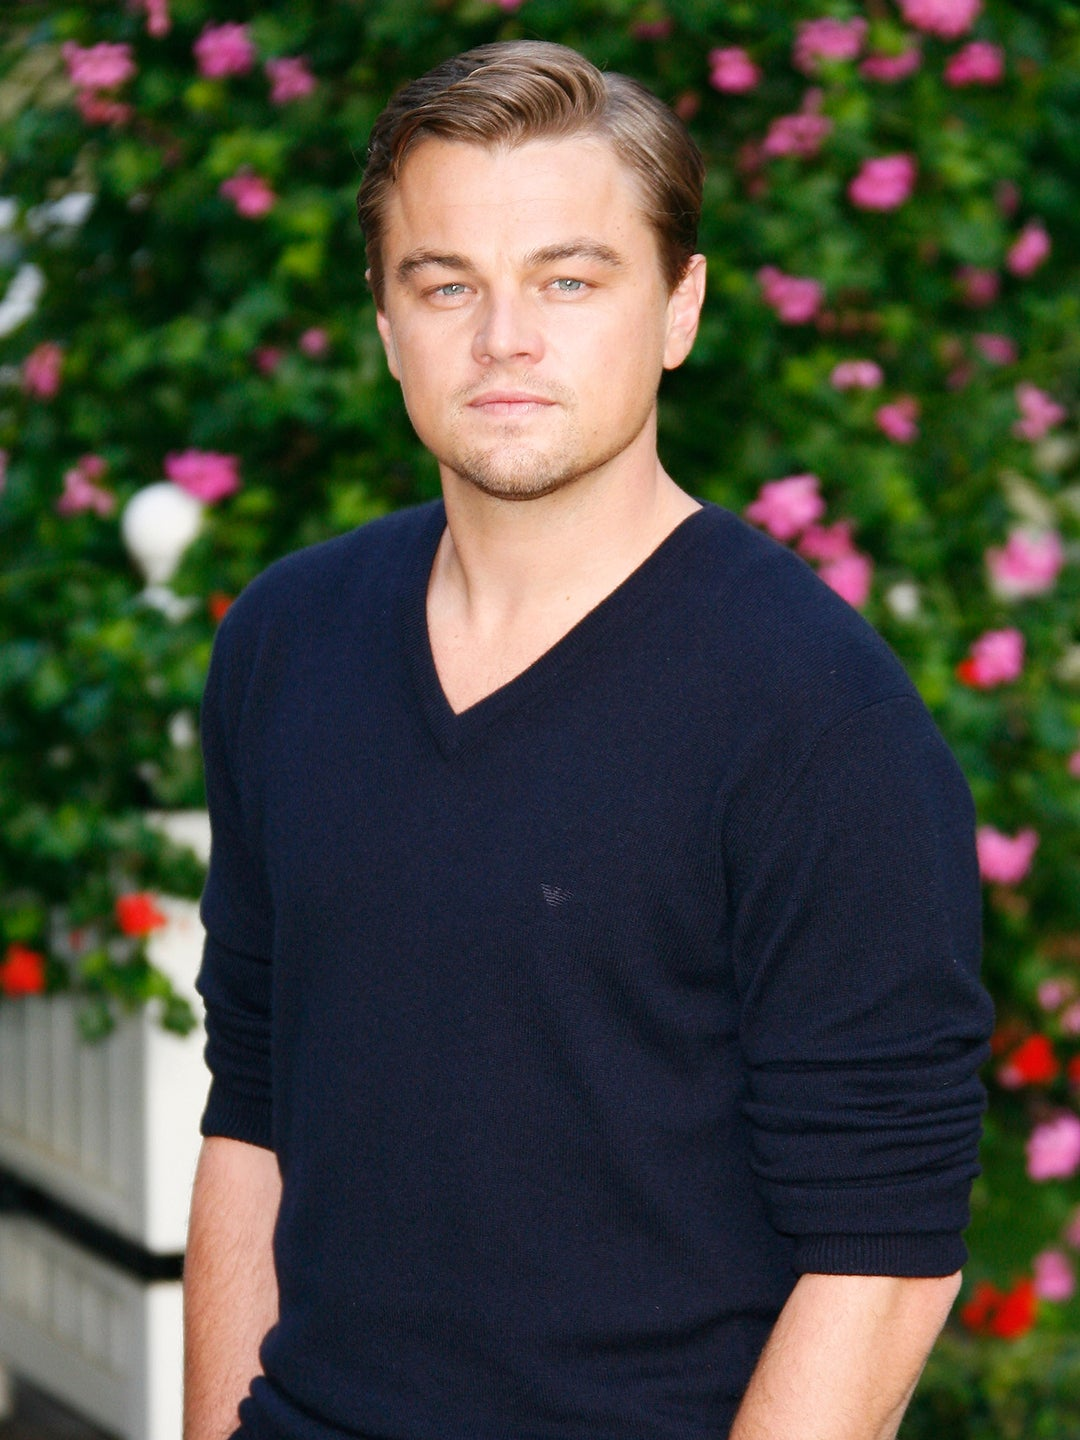 00-FEATURE-Leo-dicaprio-Moving-to-Jesse-Tyler-Fergusons-Home-domino